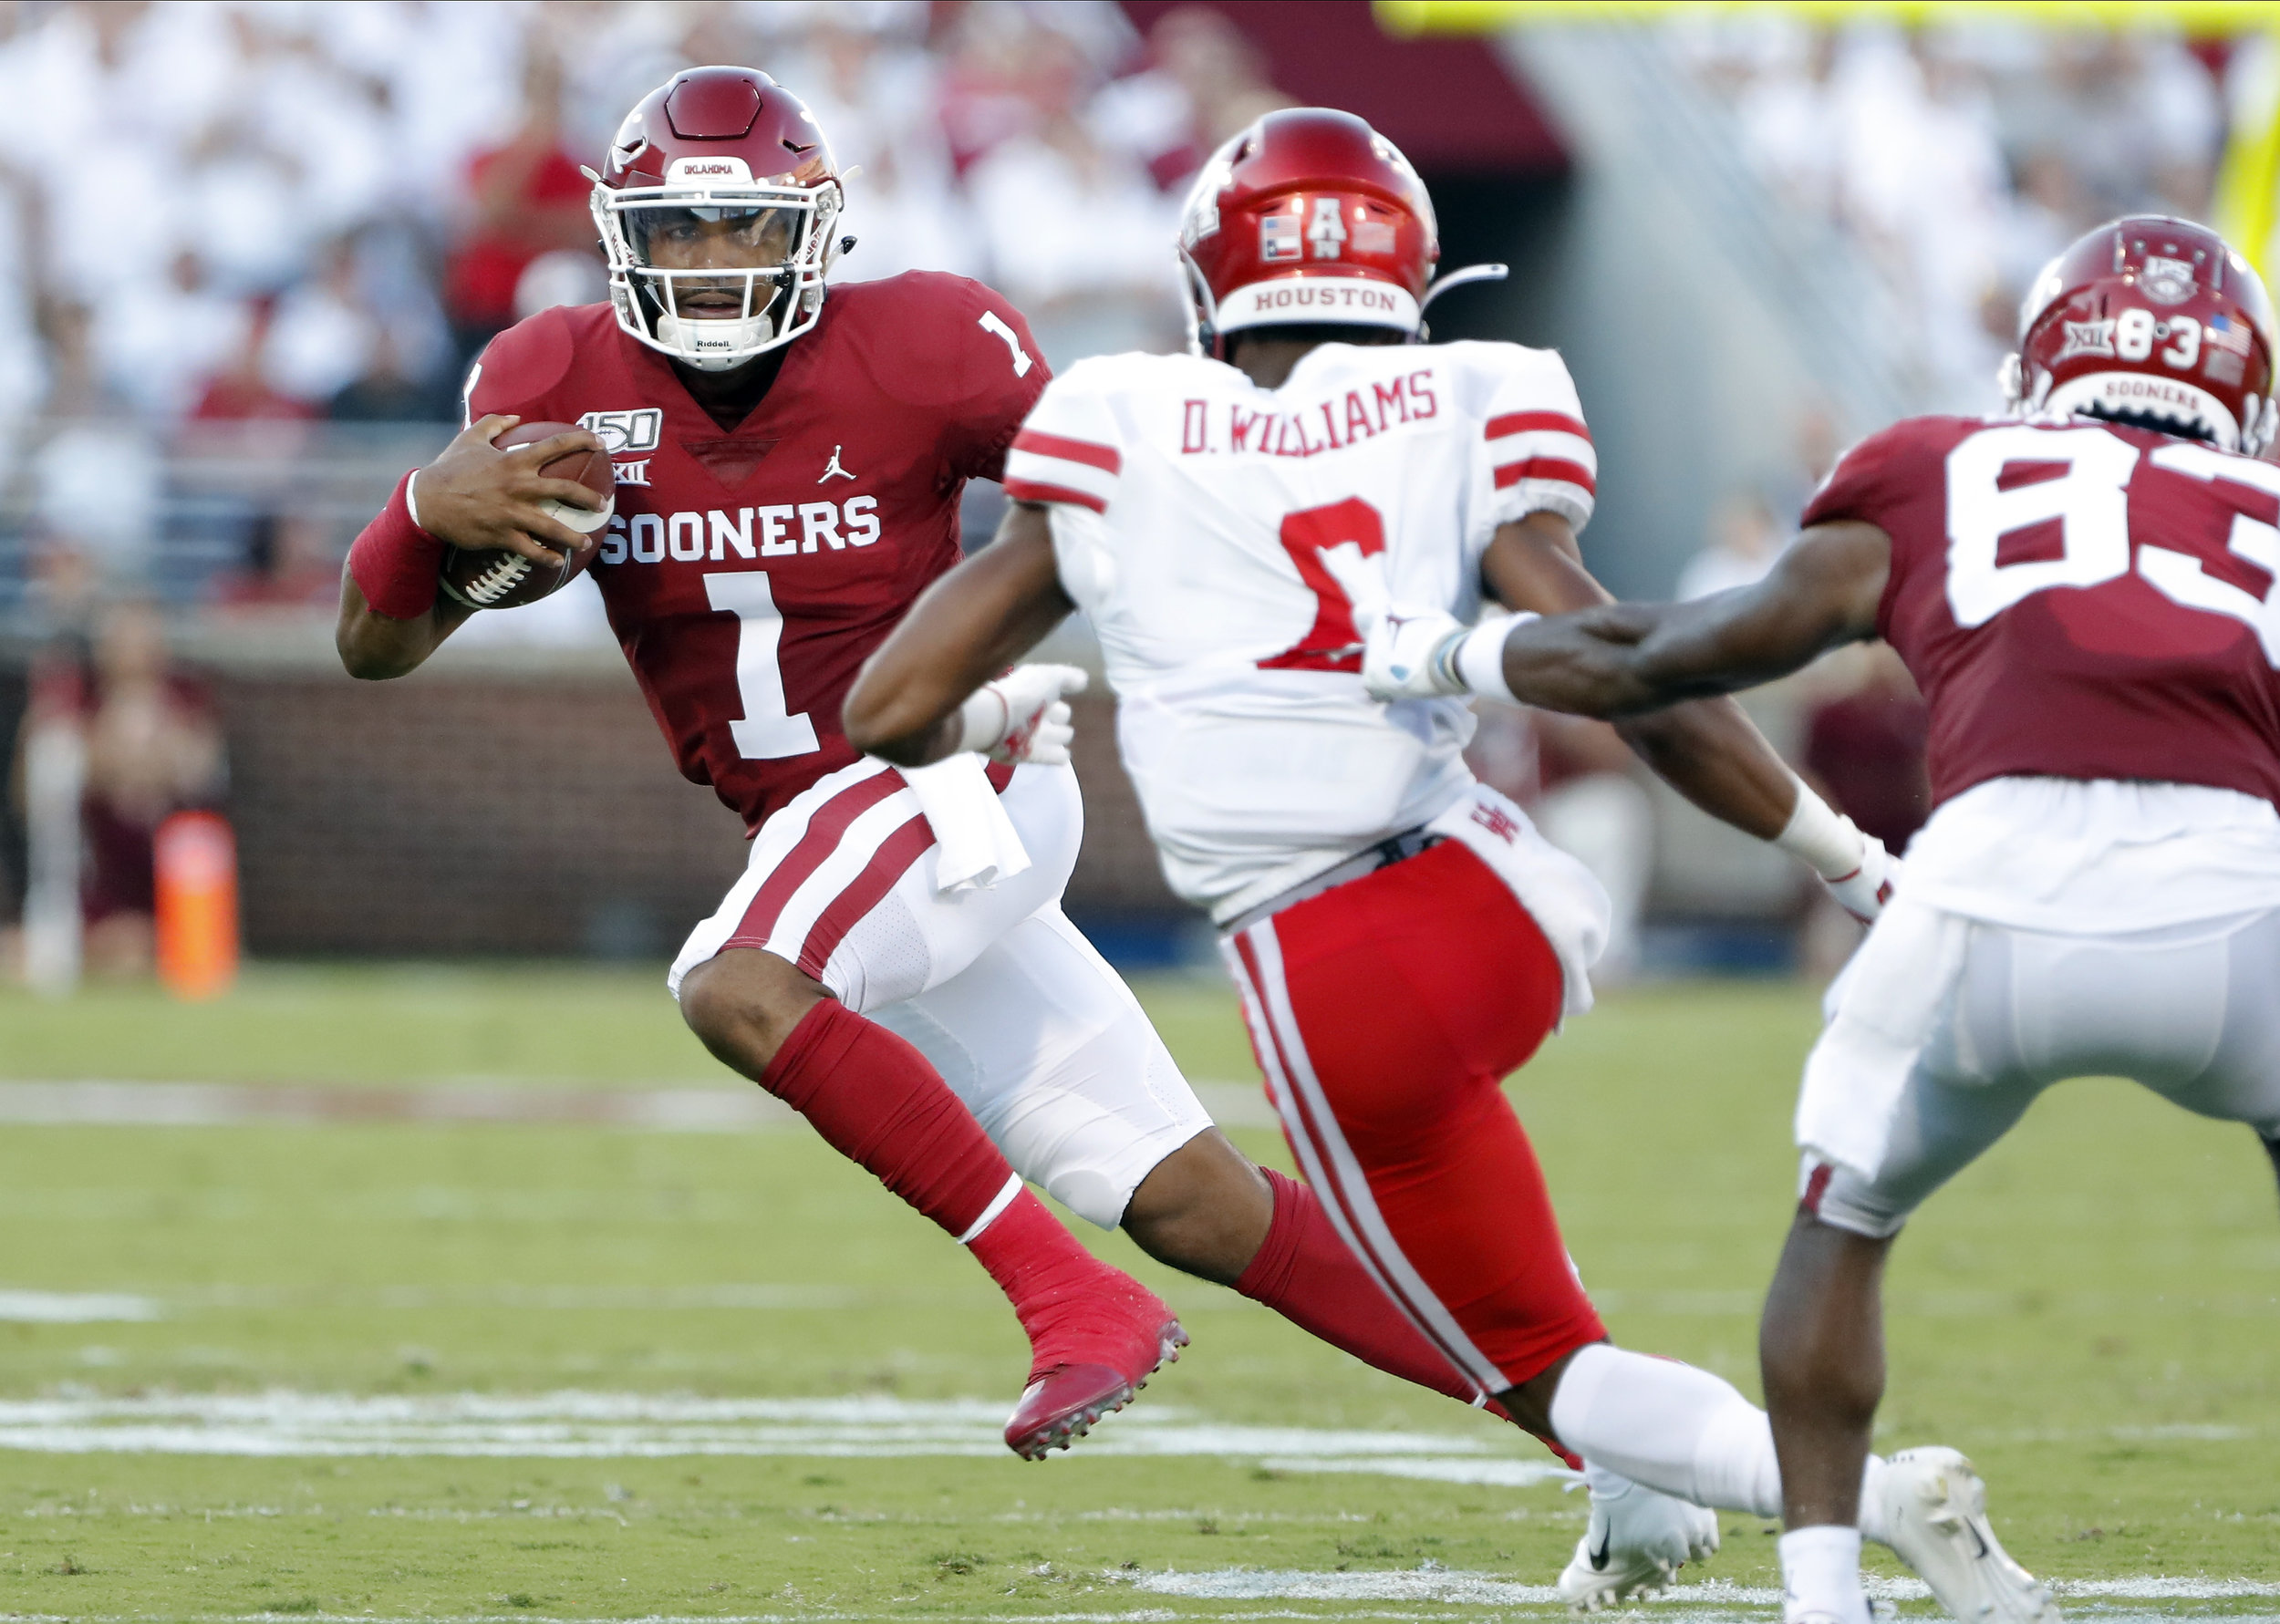 Jalen Hurts skyrocketed to first in the Heisman race after his huge game against Houston to begin the season.  Photo from The Daily Campus